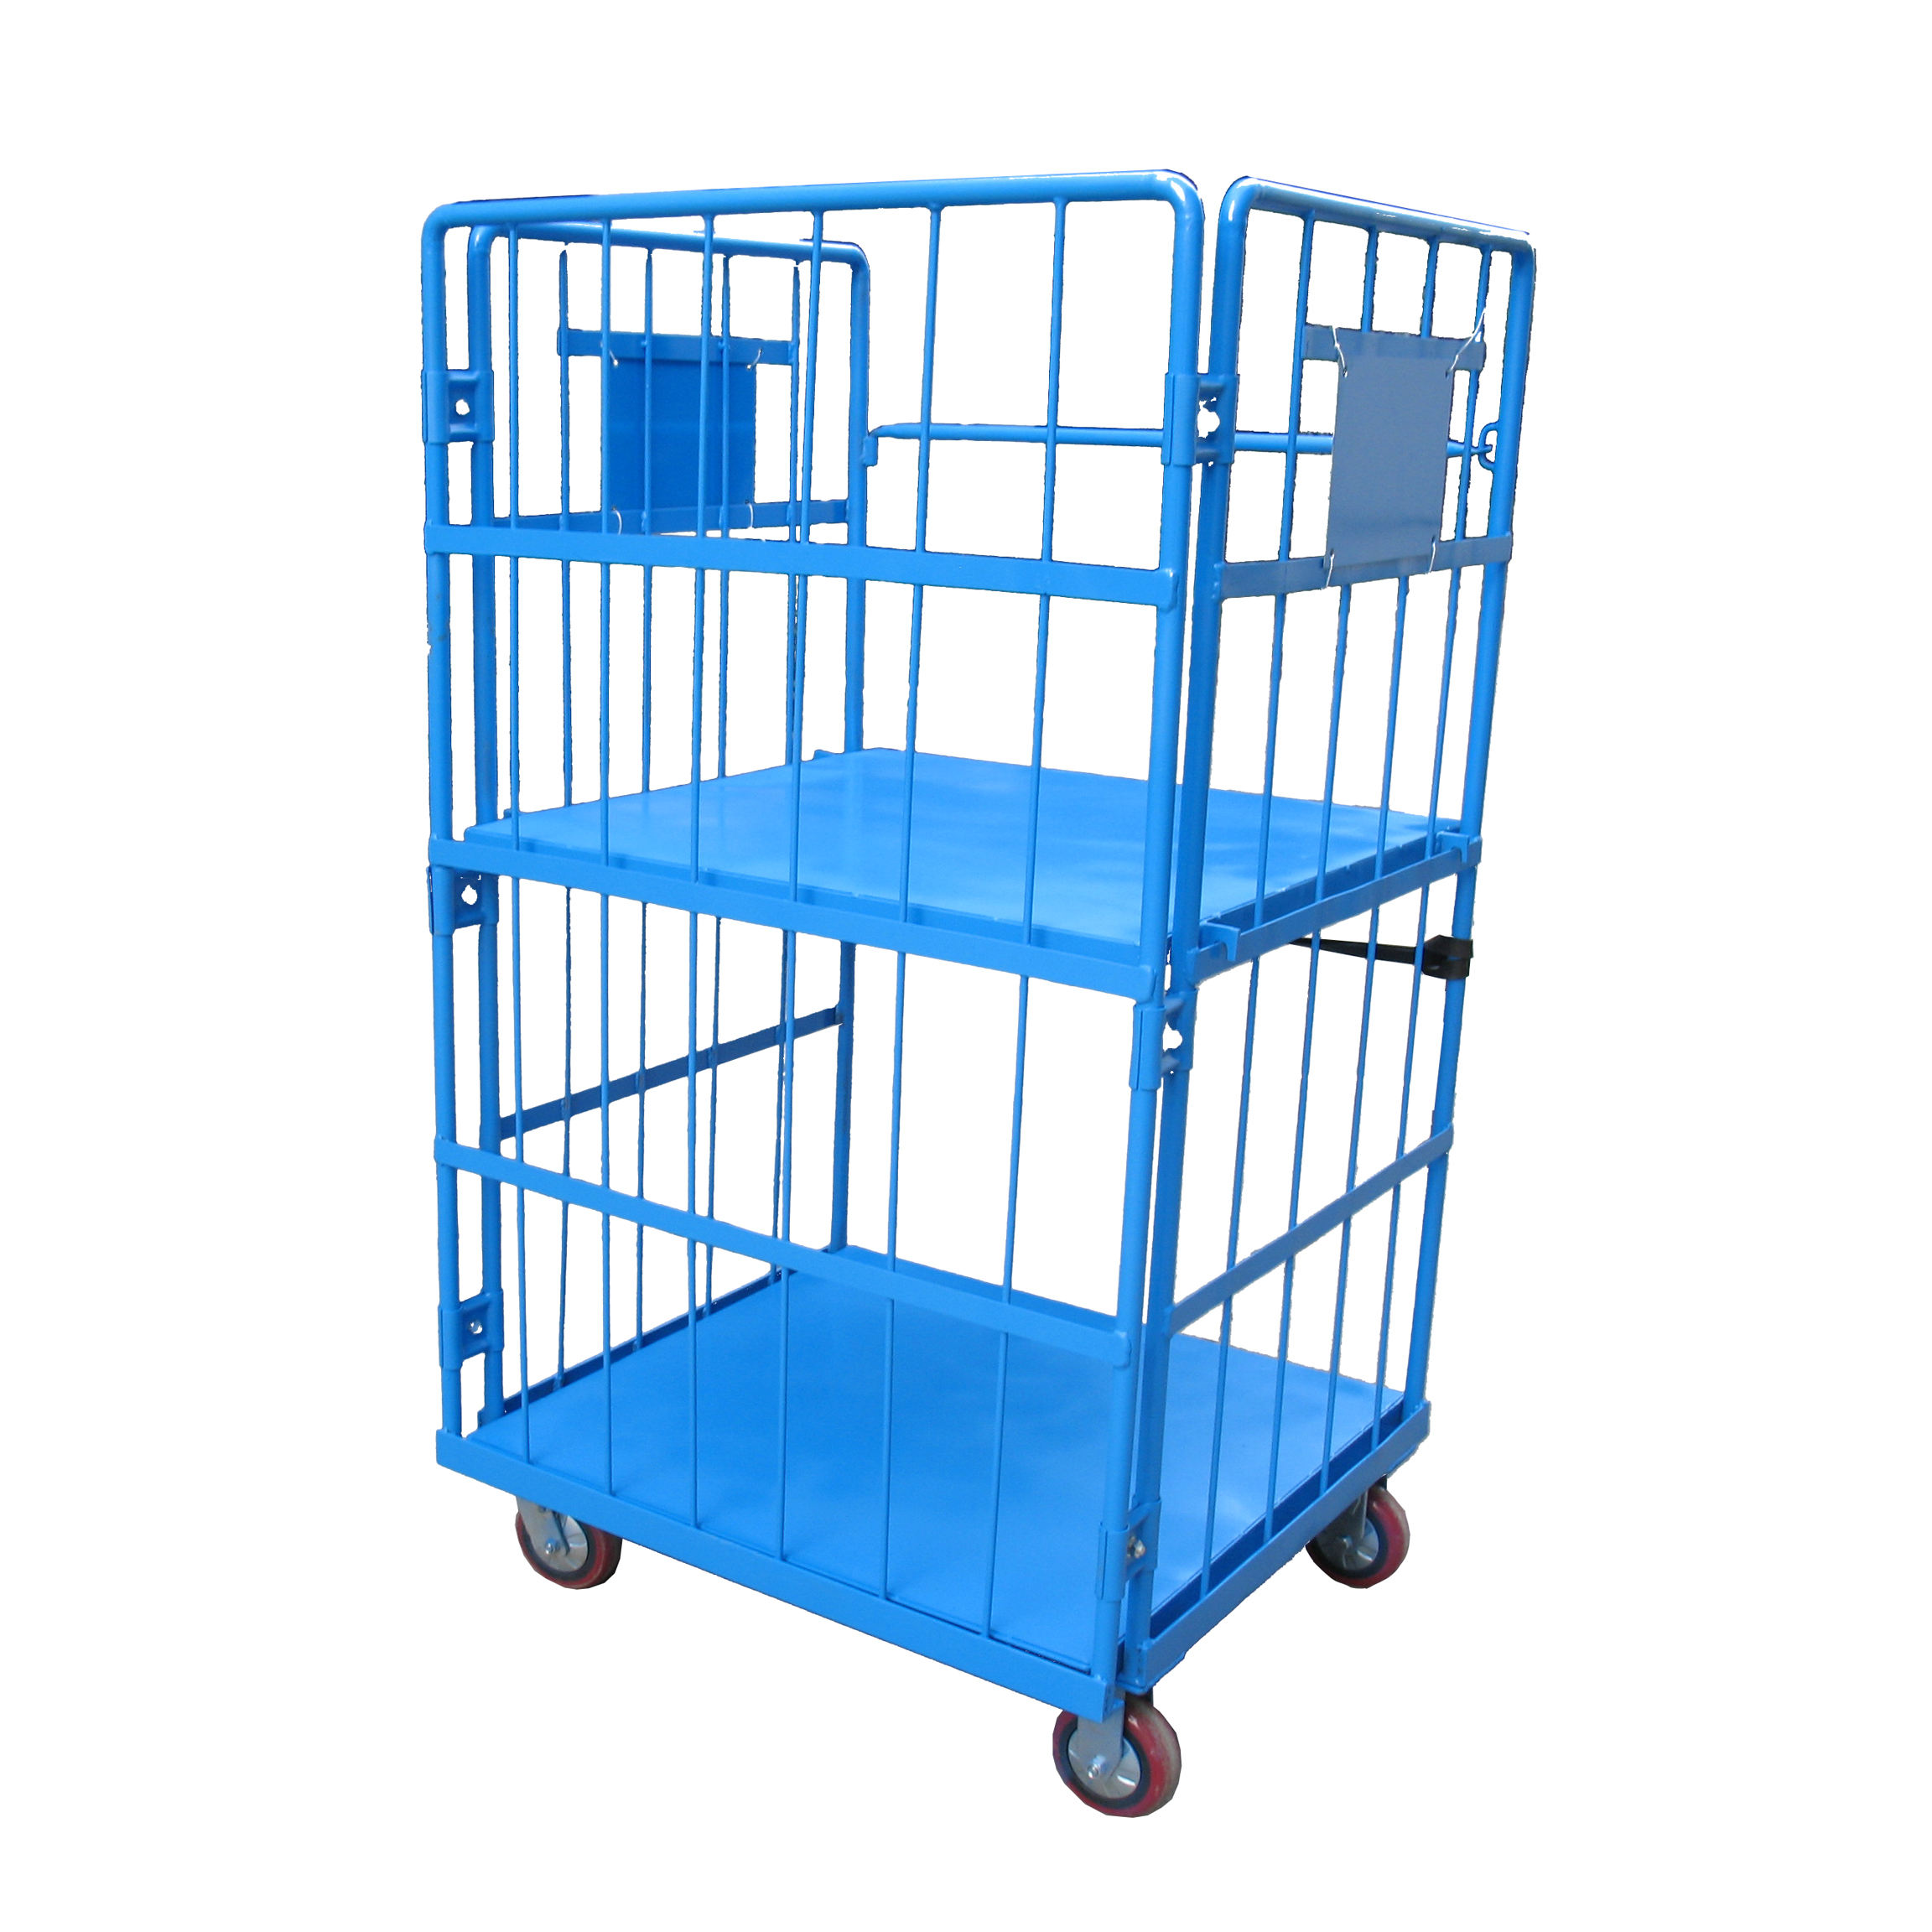 Foldable oversized load 500kg warehouse equipment industrial rolling cage trolley cart